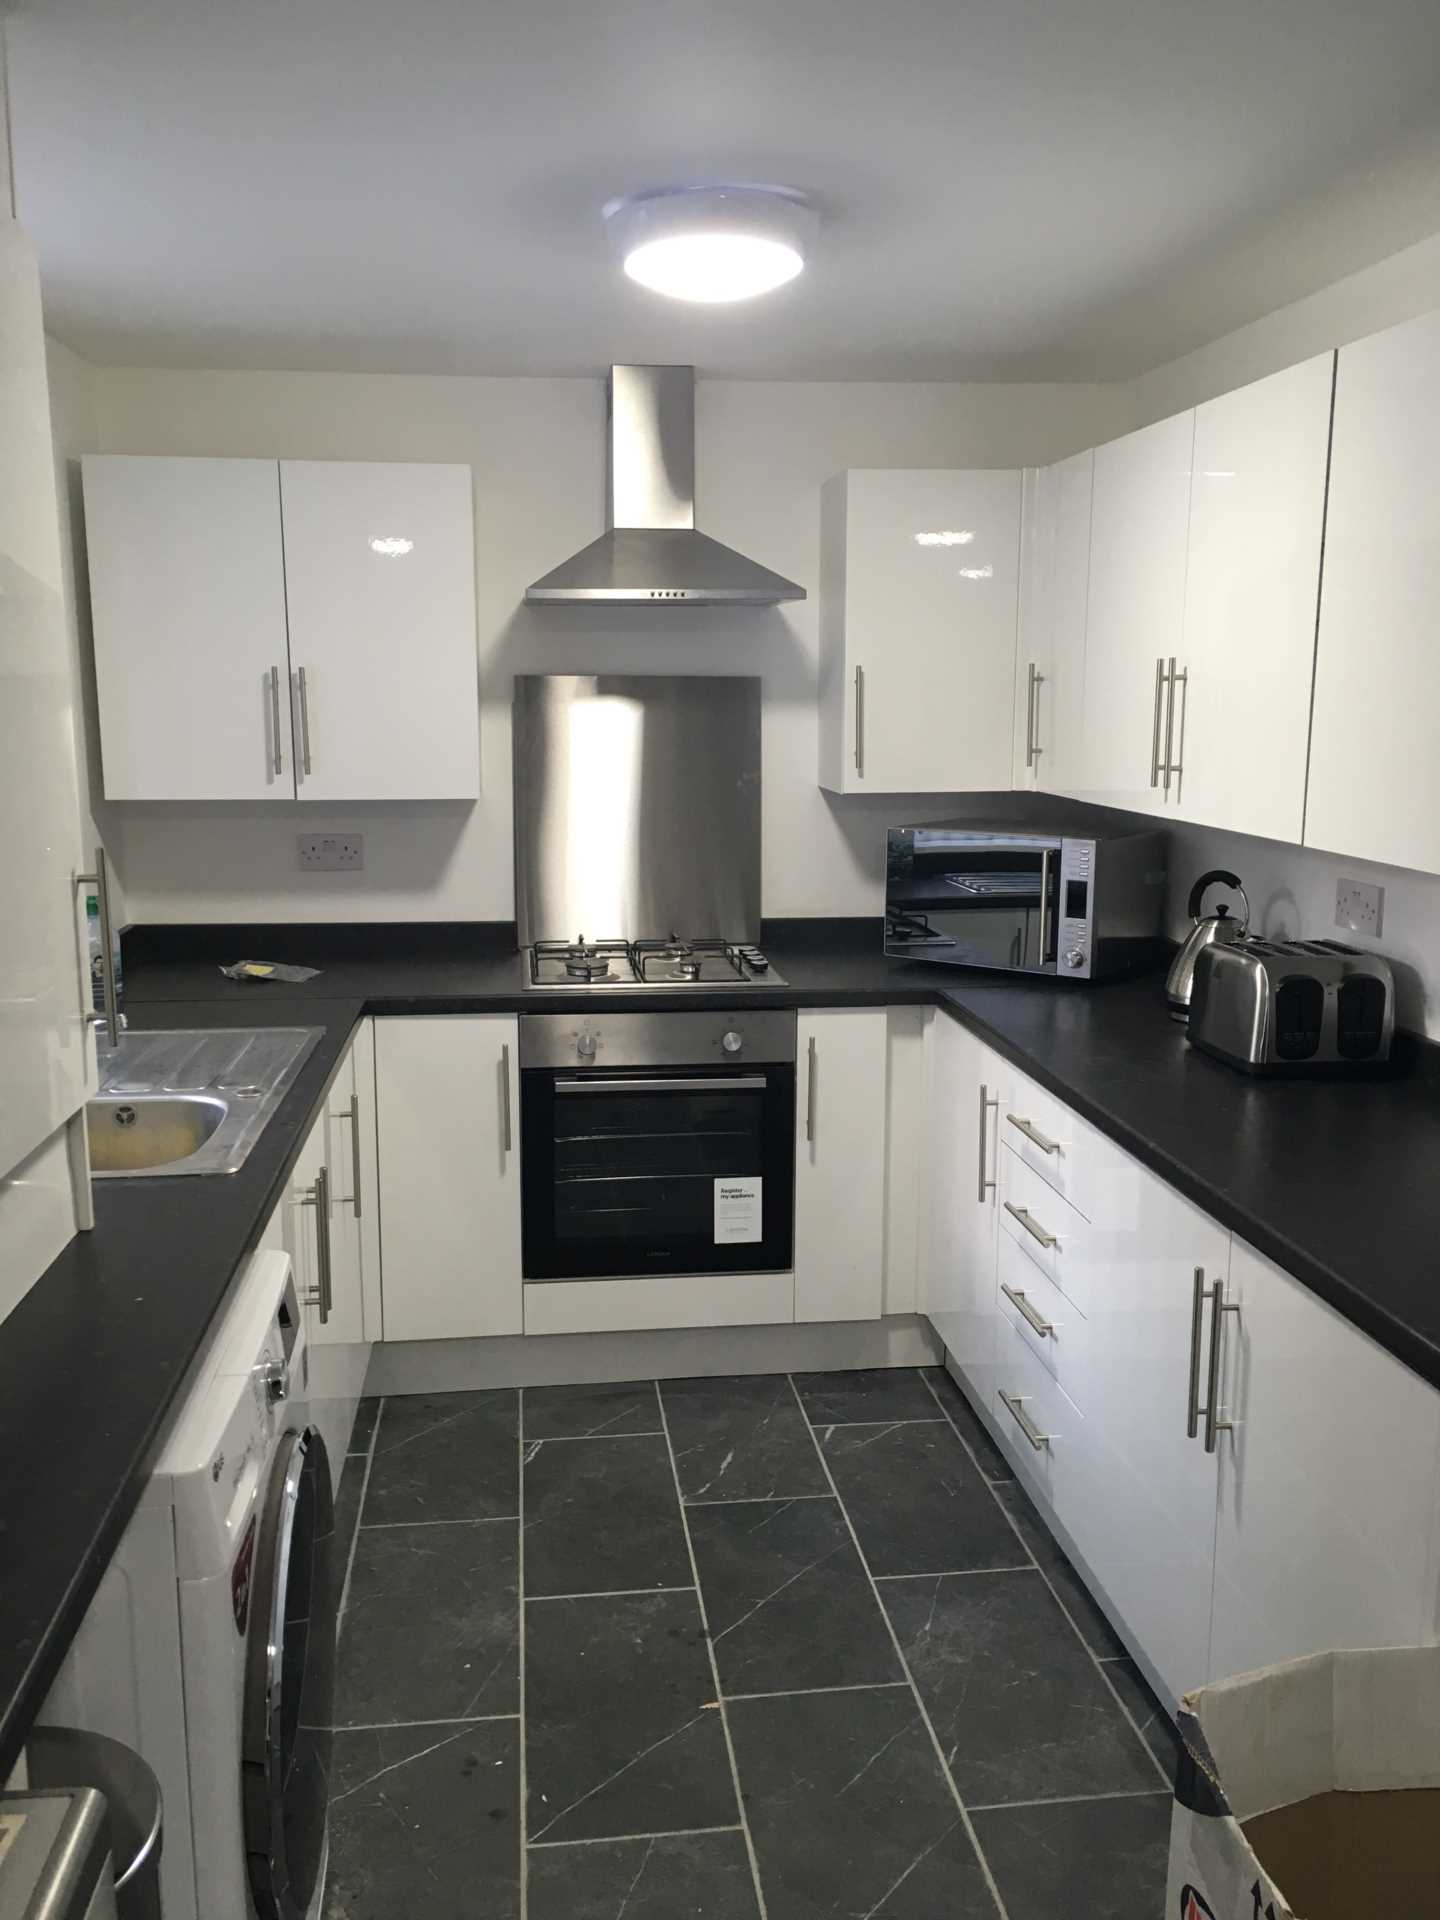 1 bed Flat for rent in Liverpool. From Cozyhomes 4u Ltd